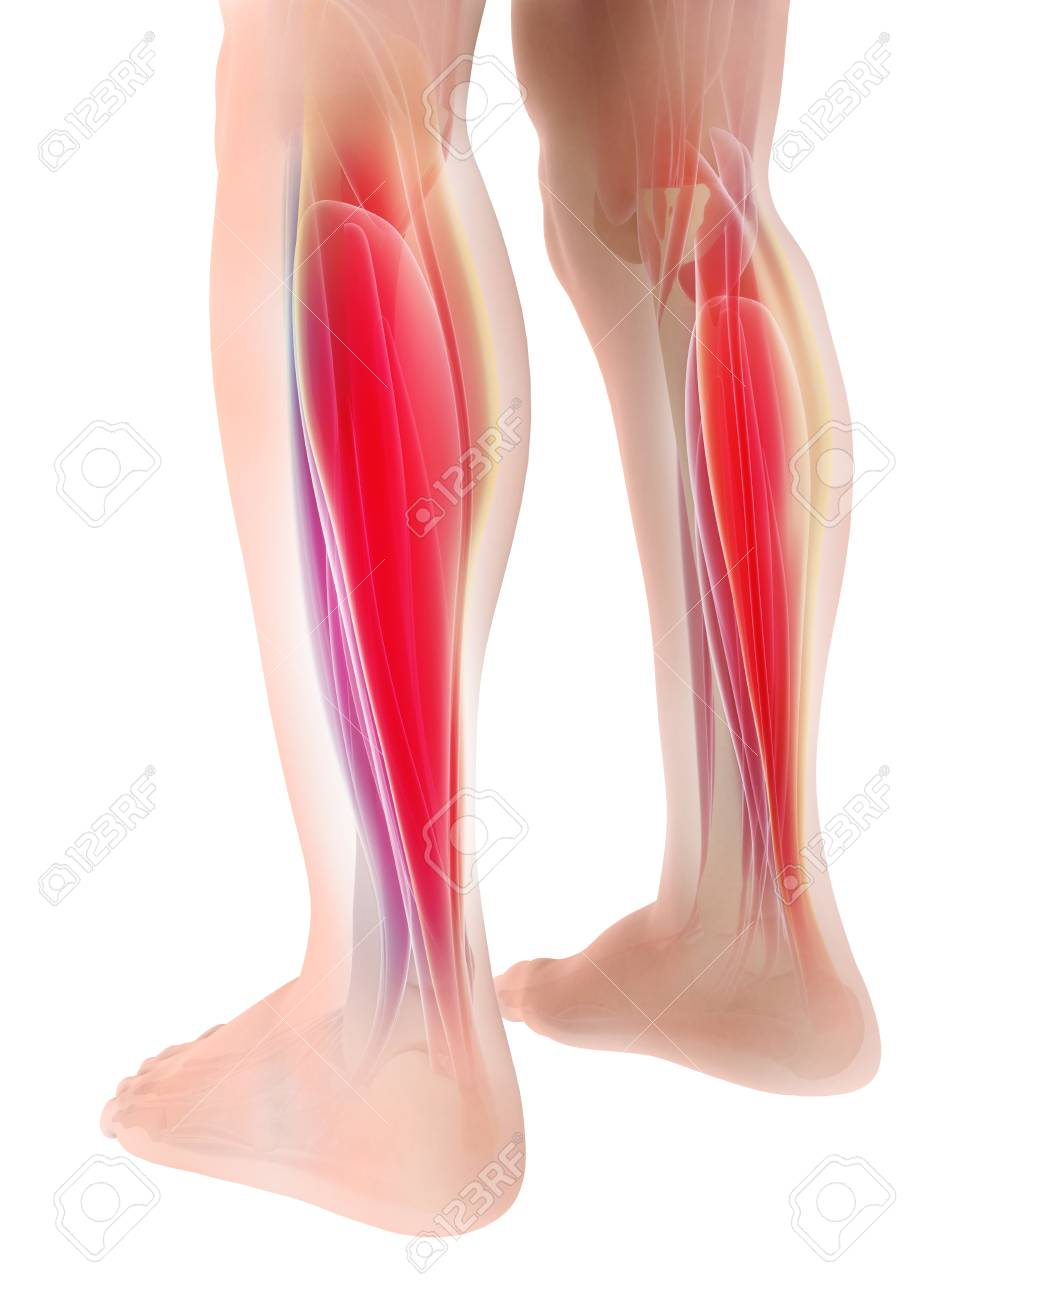 3D Illustration Of Gastrocnemius, Part Of Legs Muscle Anatomy ...